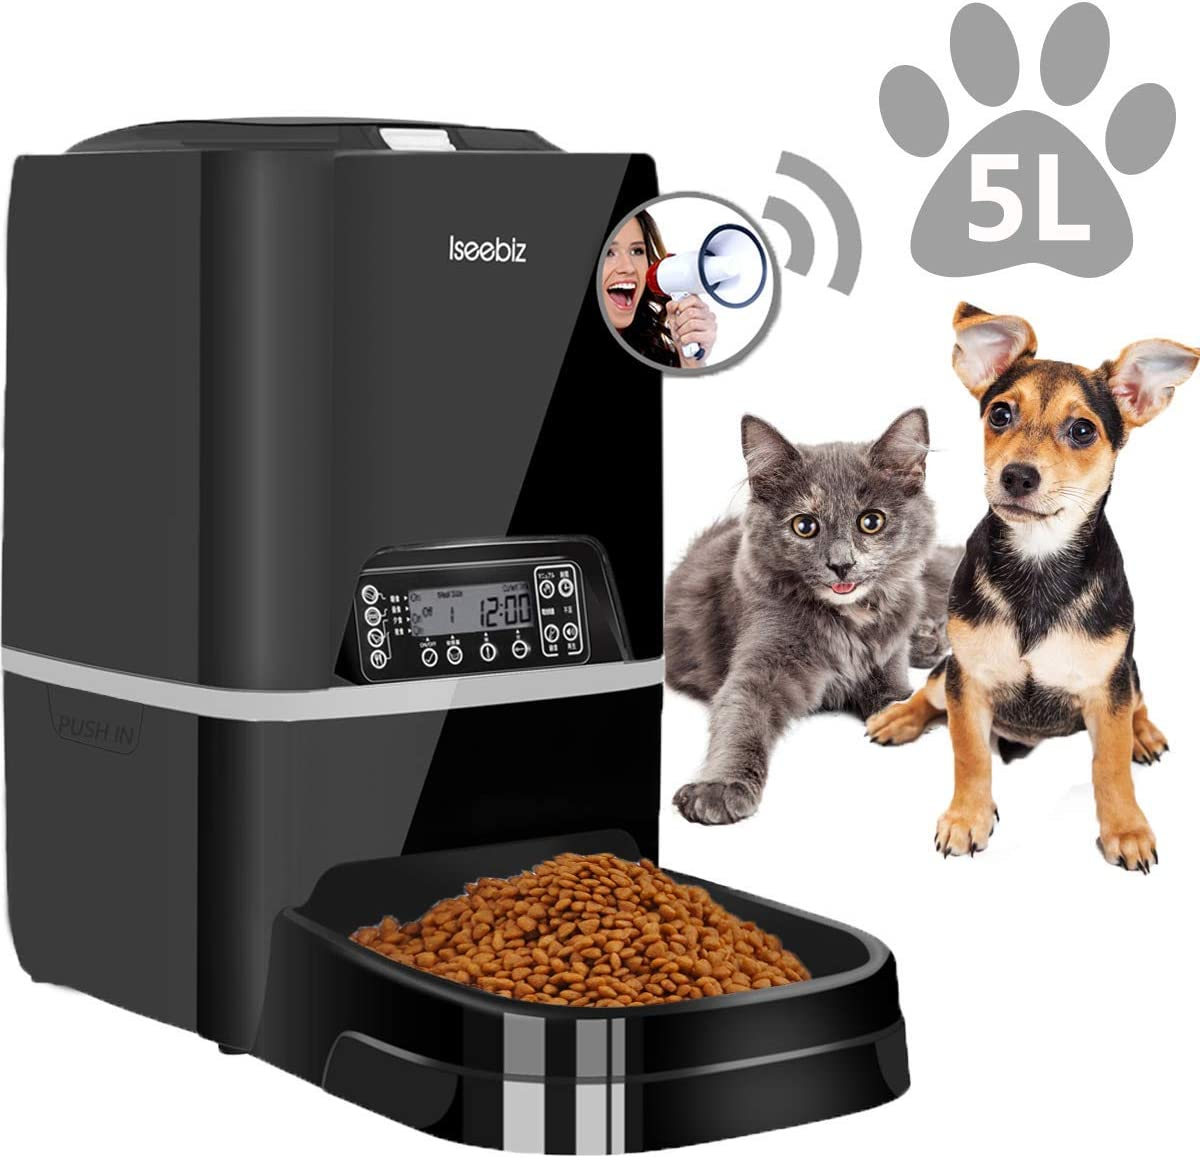 Iseebiz Automatic Pet Feeder 5L Smart Feeder Dog Cat Food Dispenser Voice Recording,Distribution Alarms,Timer Programmable, Portion Control, IR Detect, 4 Meals Per Day for Small and Medium Cats Dogs…